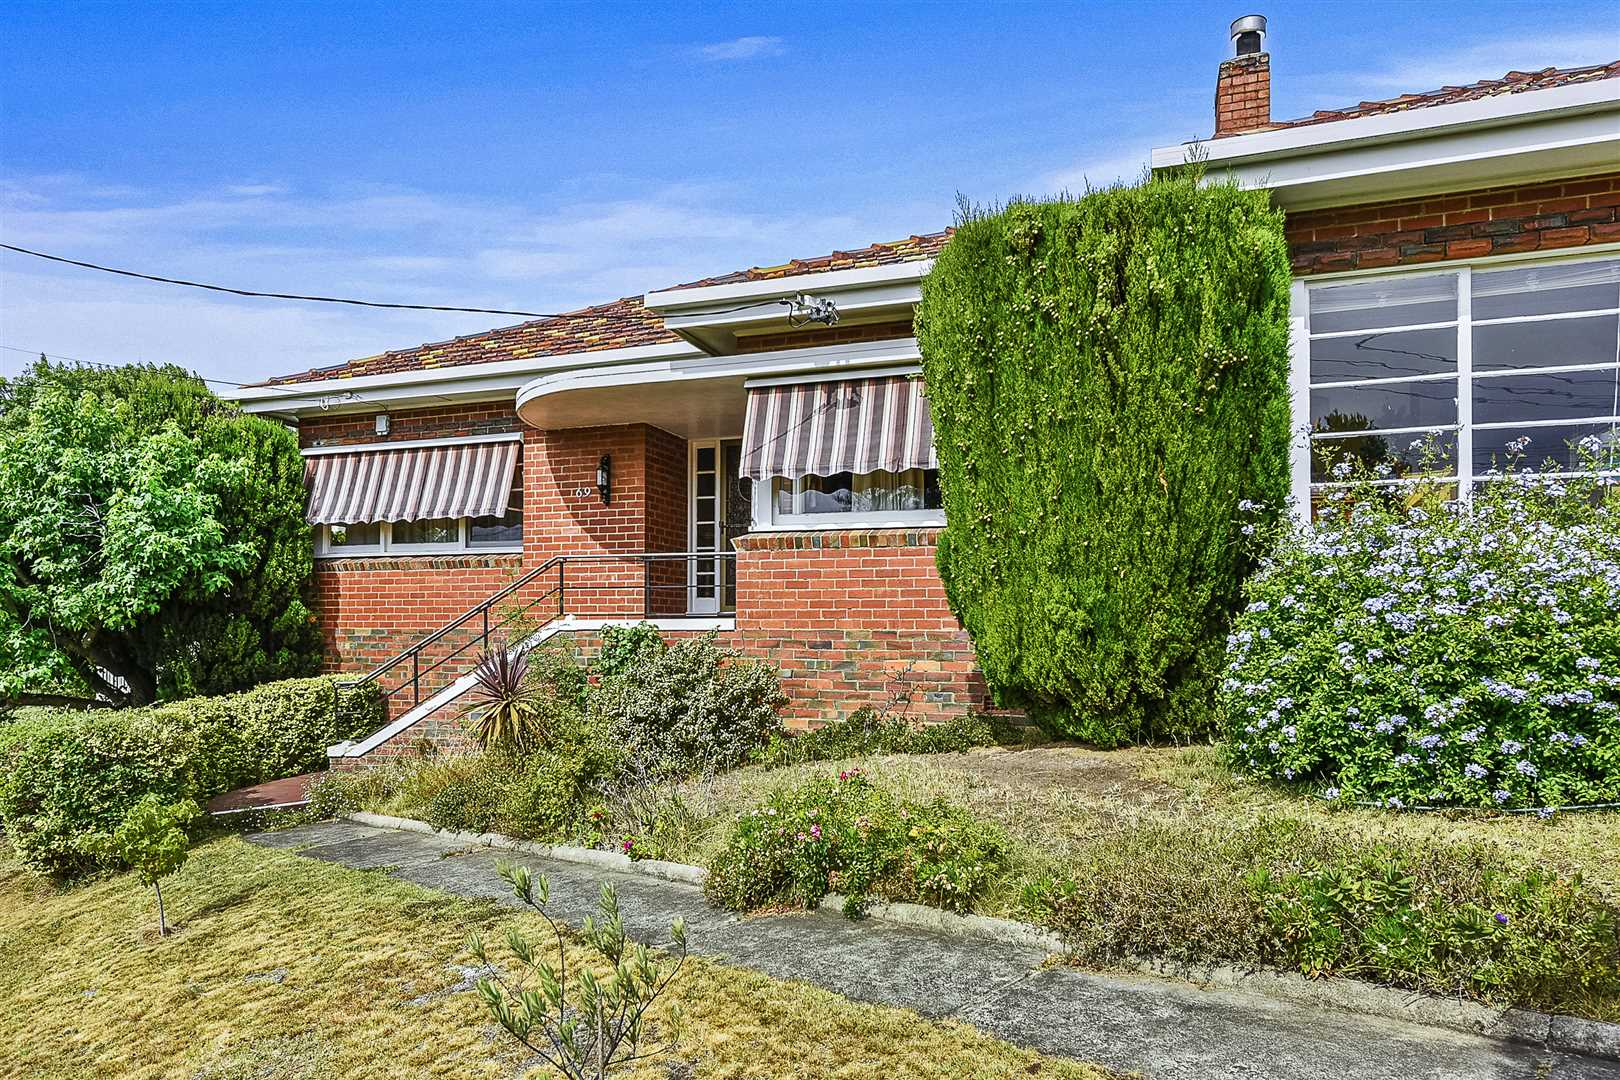 Original Family Home In Sought After Location!